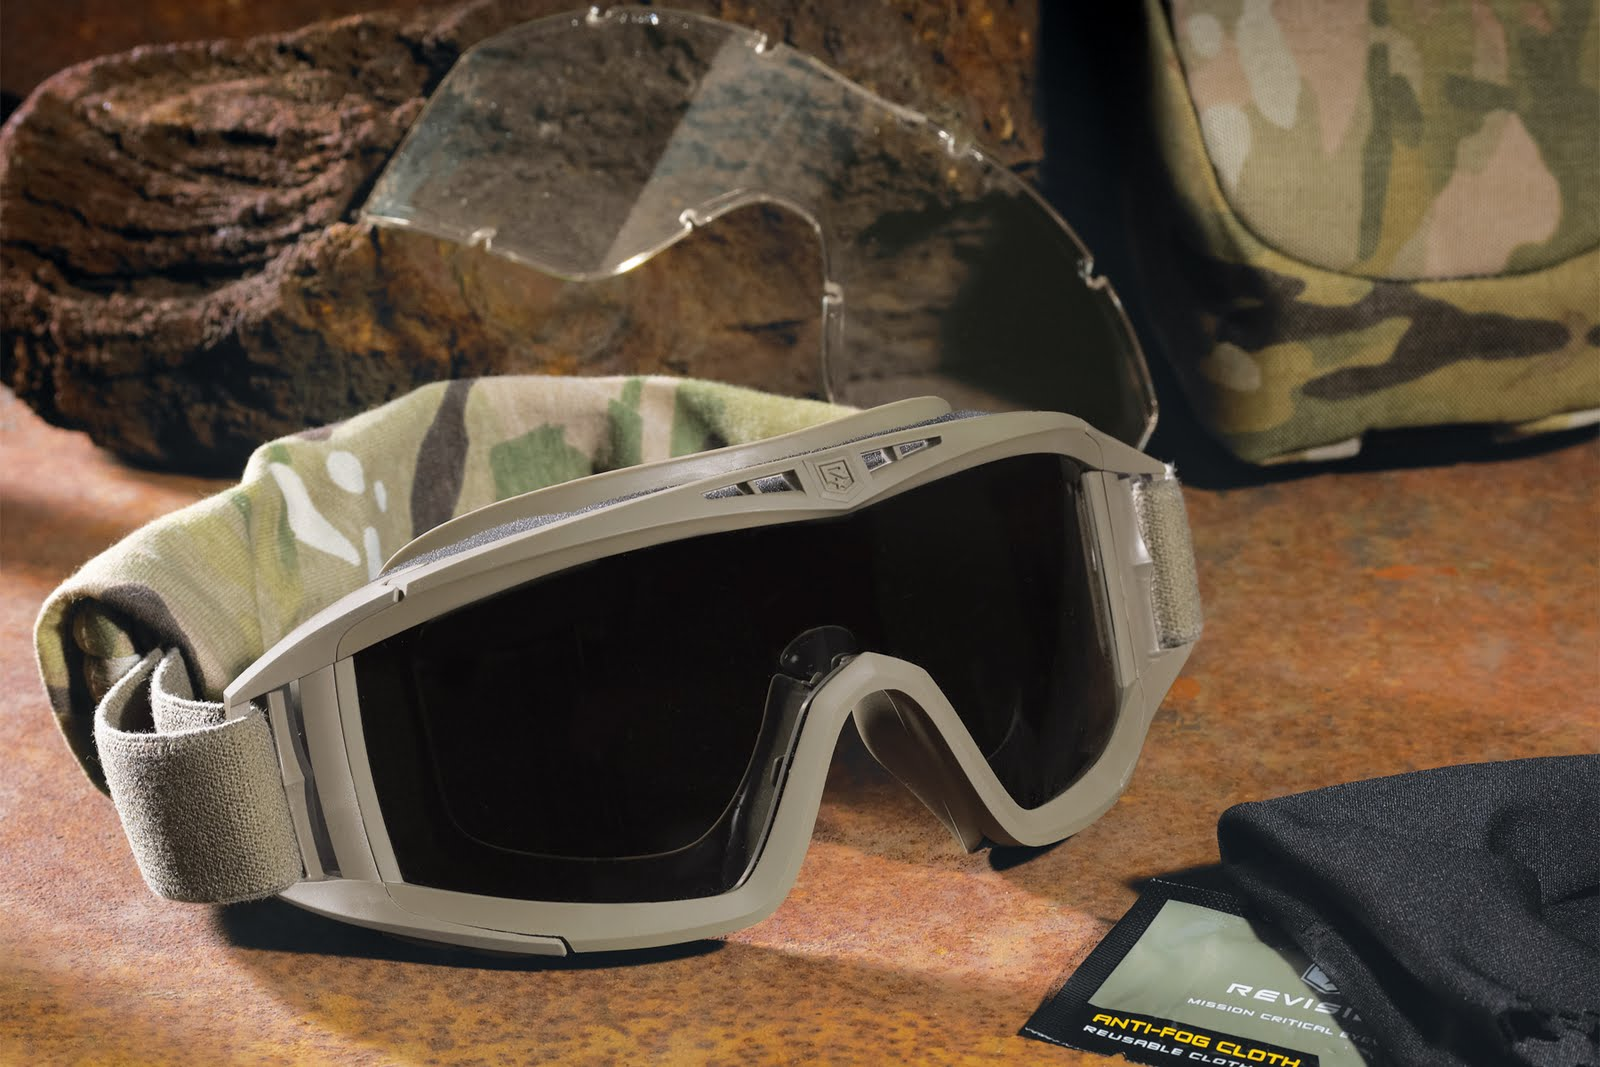 c20d22b8be0b Tactical Gear and Military Clothing News   May 2011